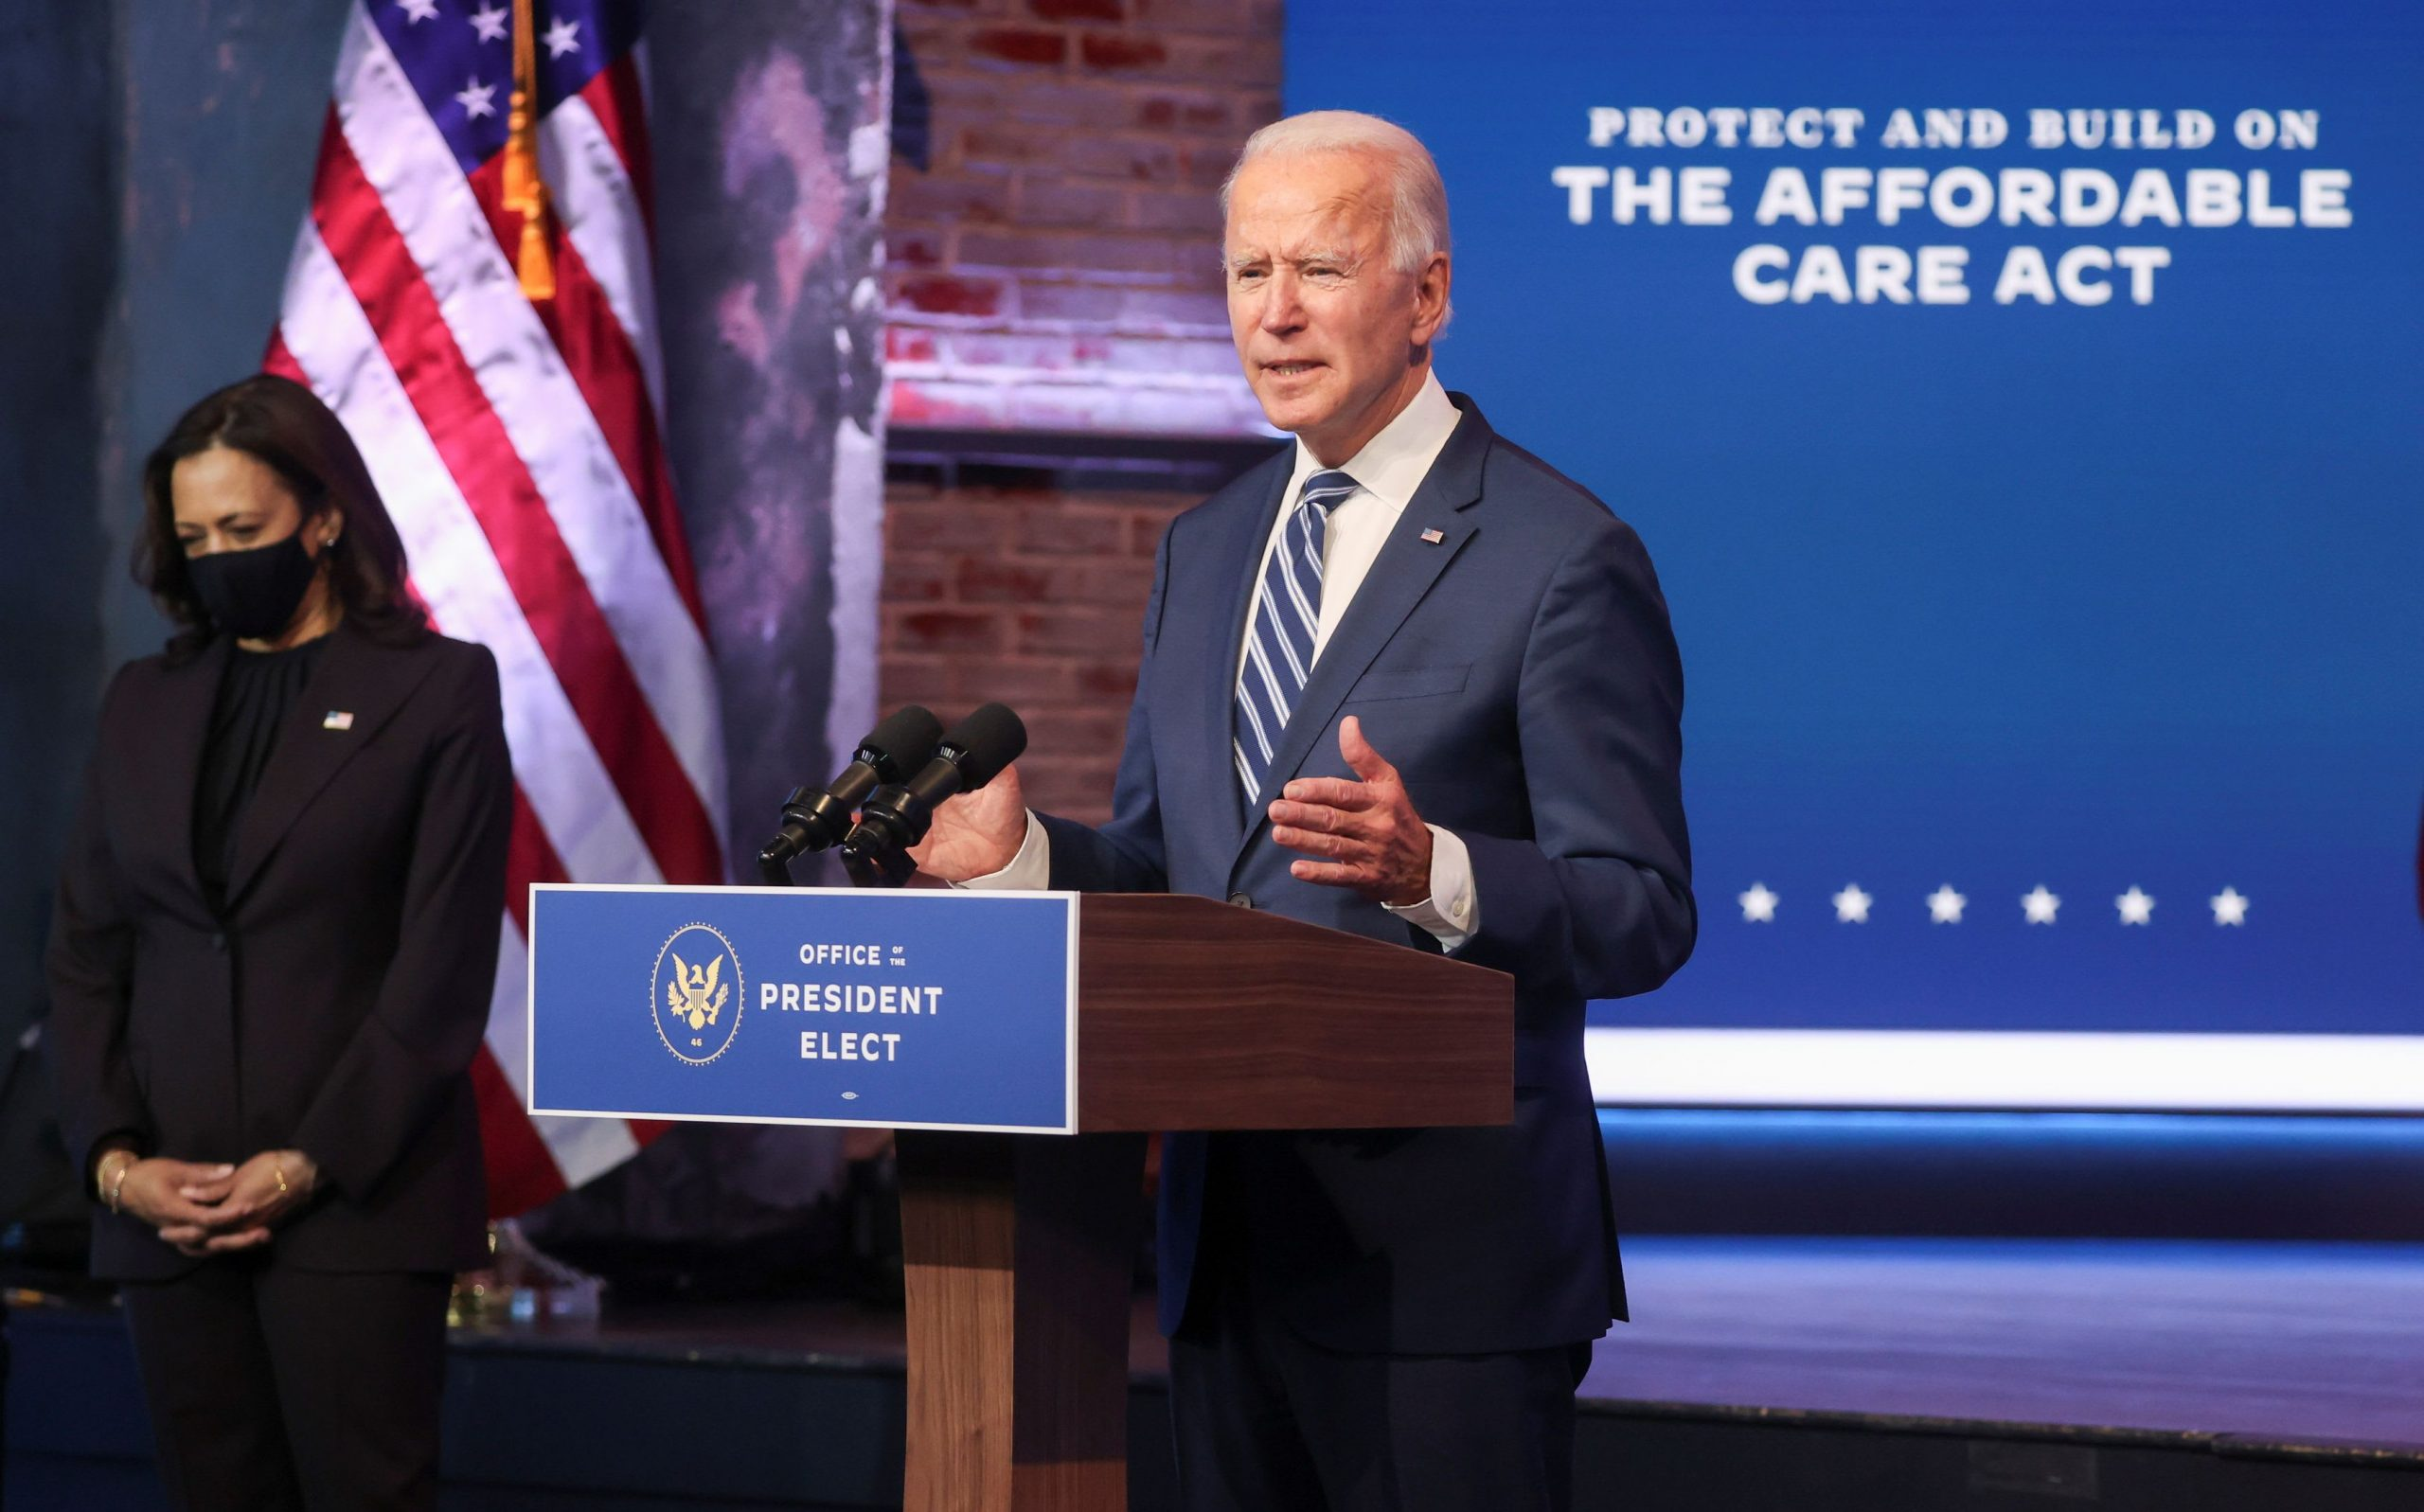 Biden says 'this is an embarrassment' that Trump will not accept change